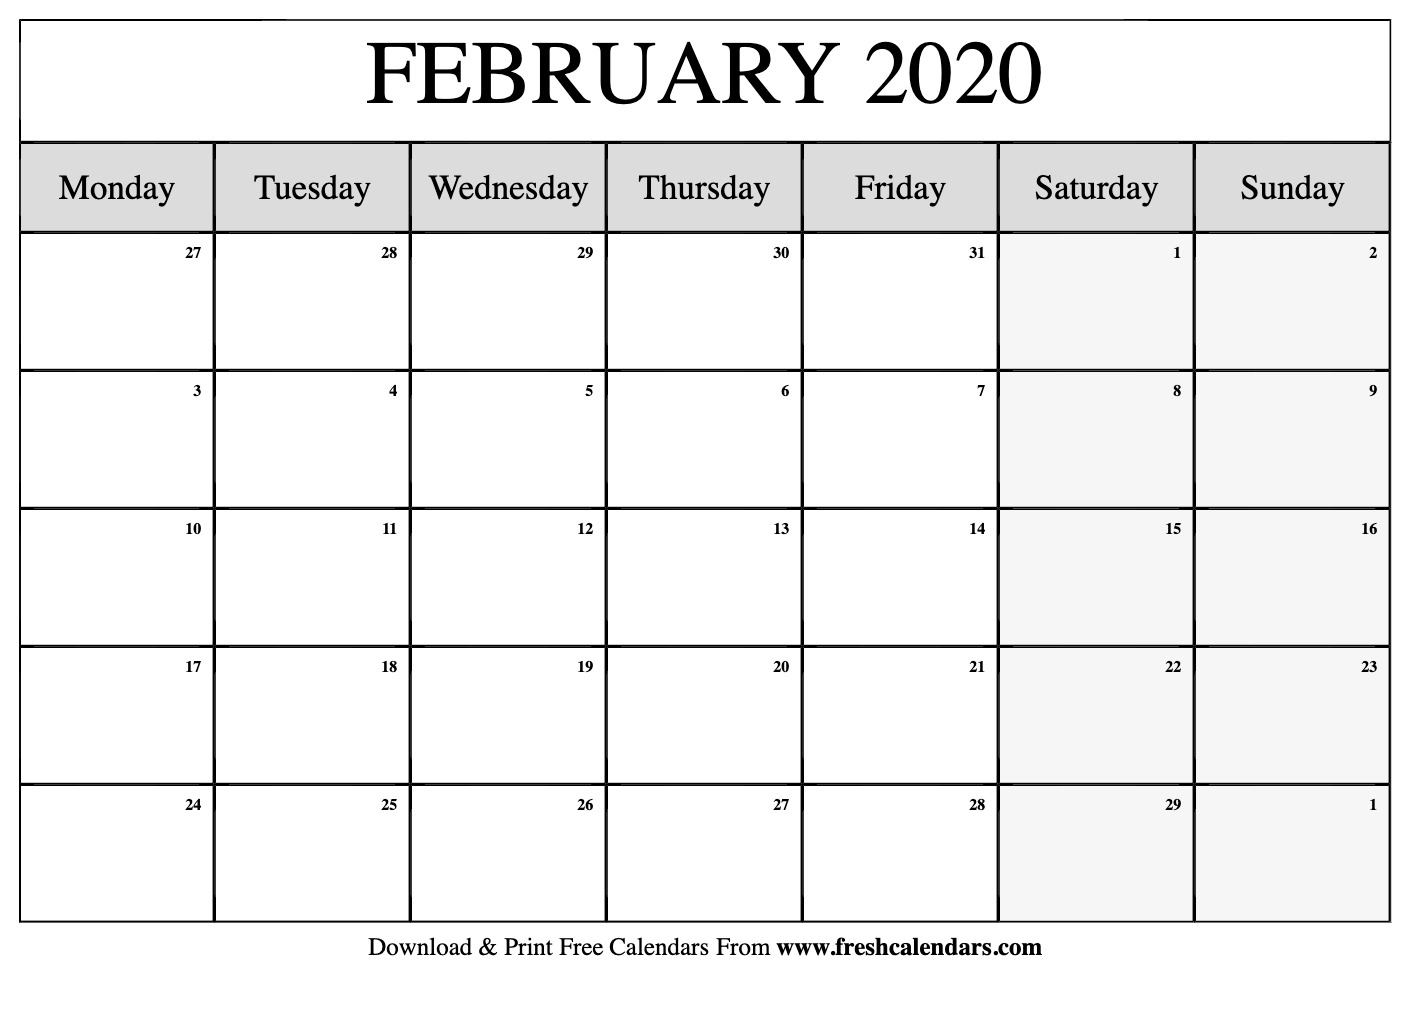 February 2020 Calendar Printable-Monthly Template 2020